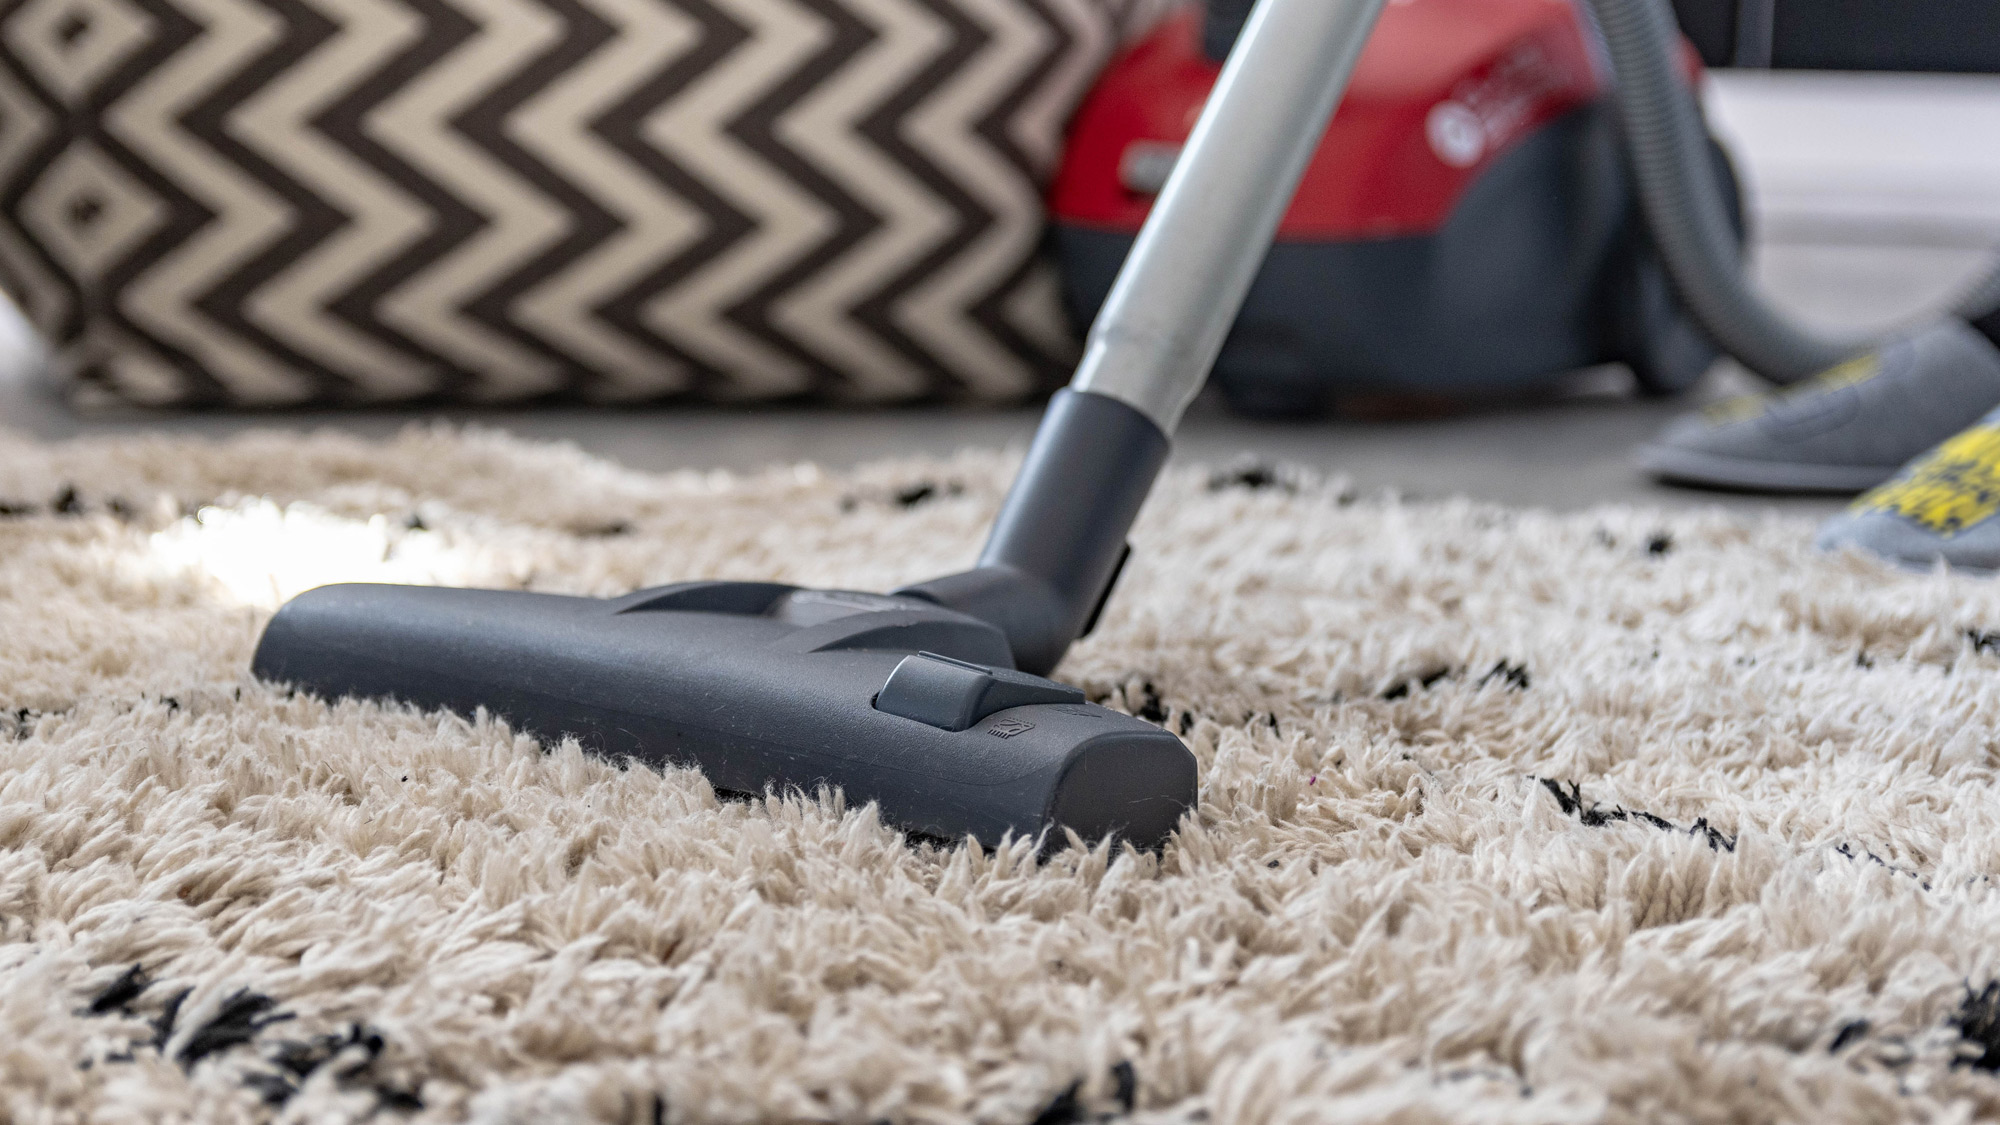 Canister vs upright vacuums - which should I buy?